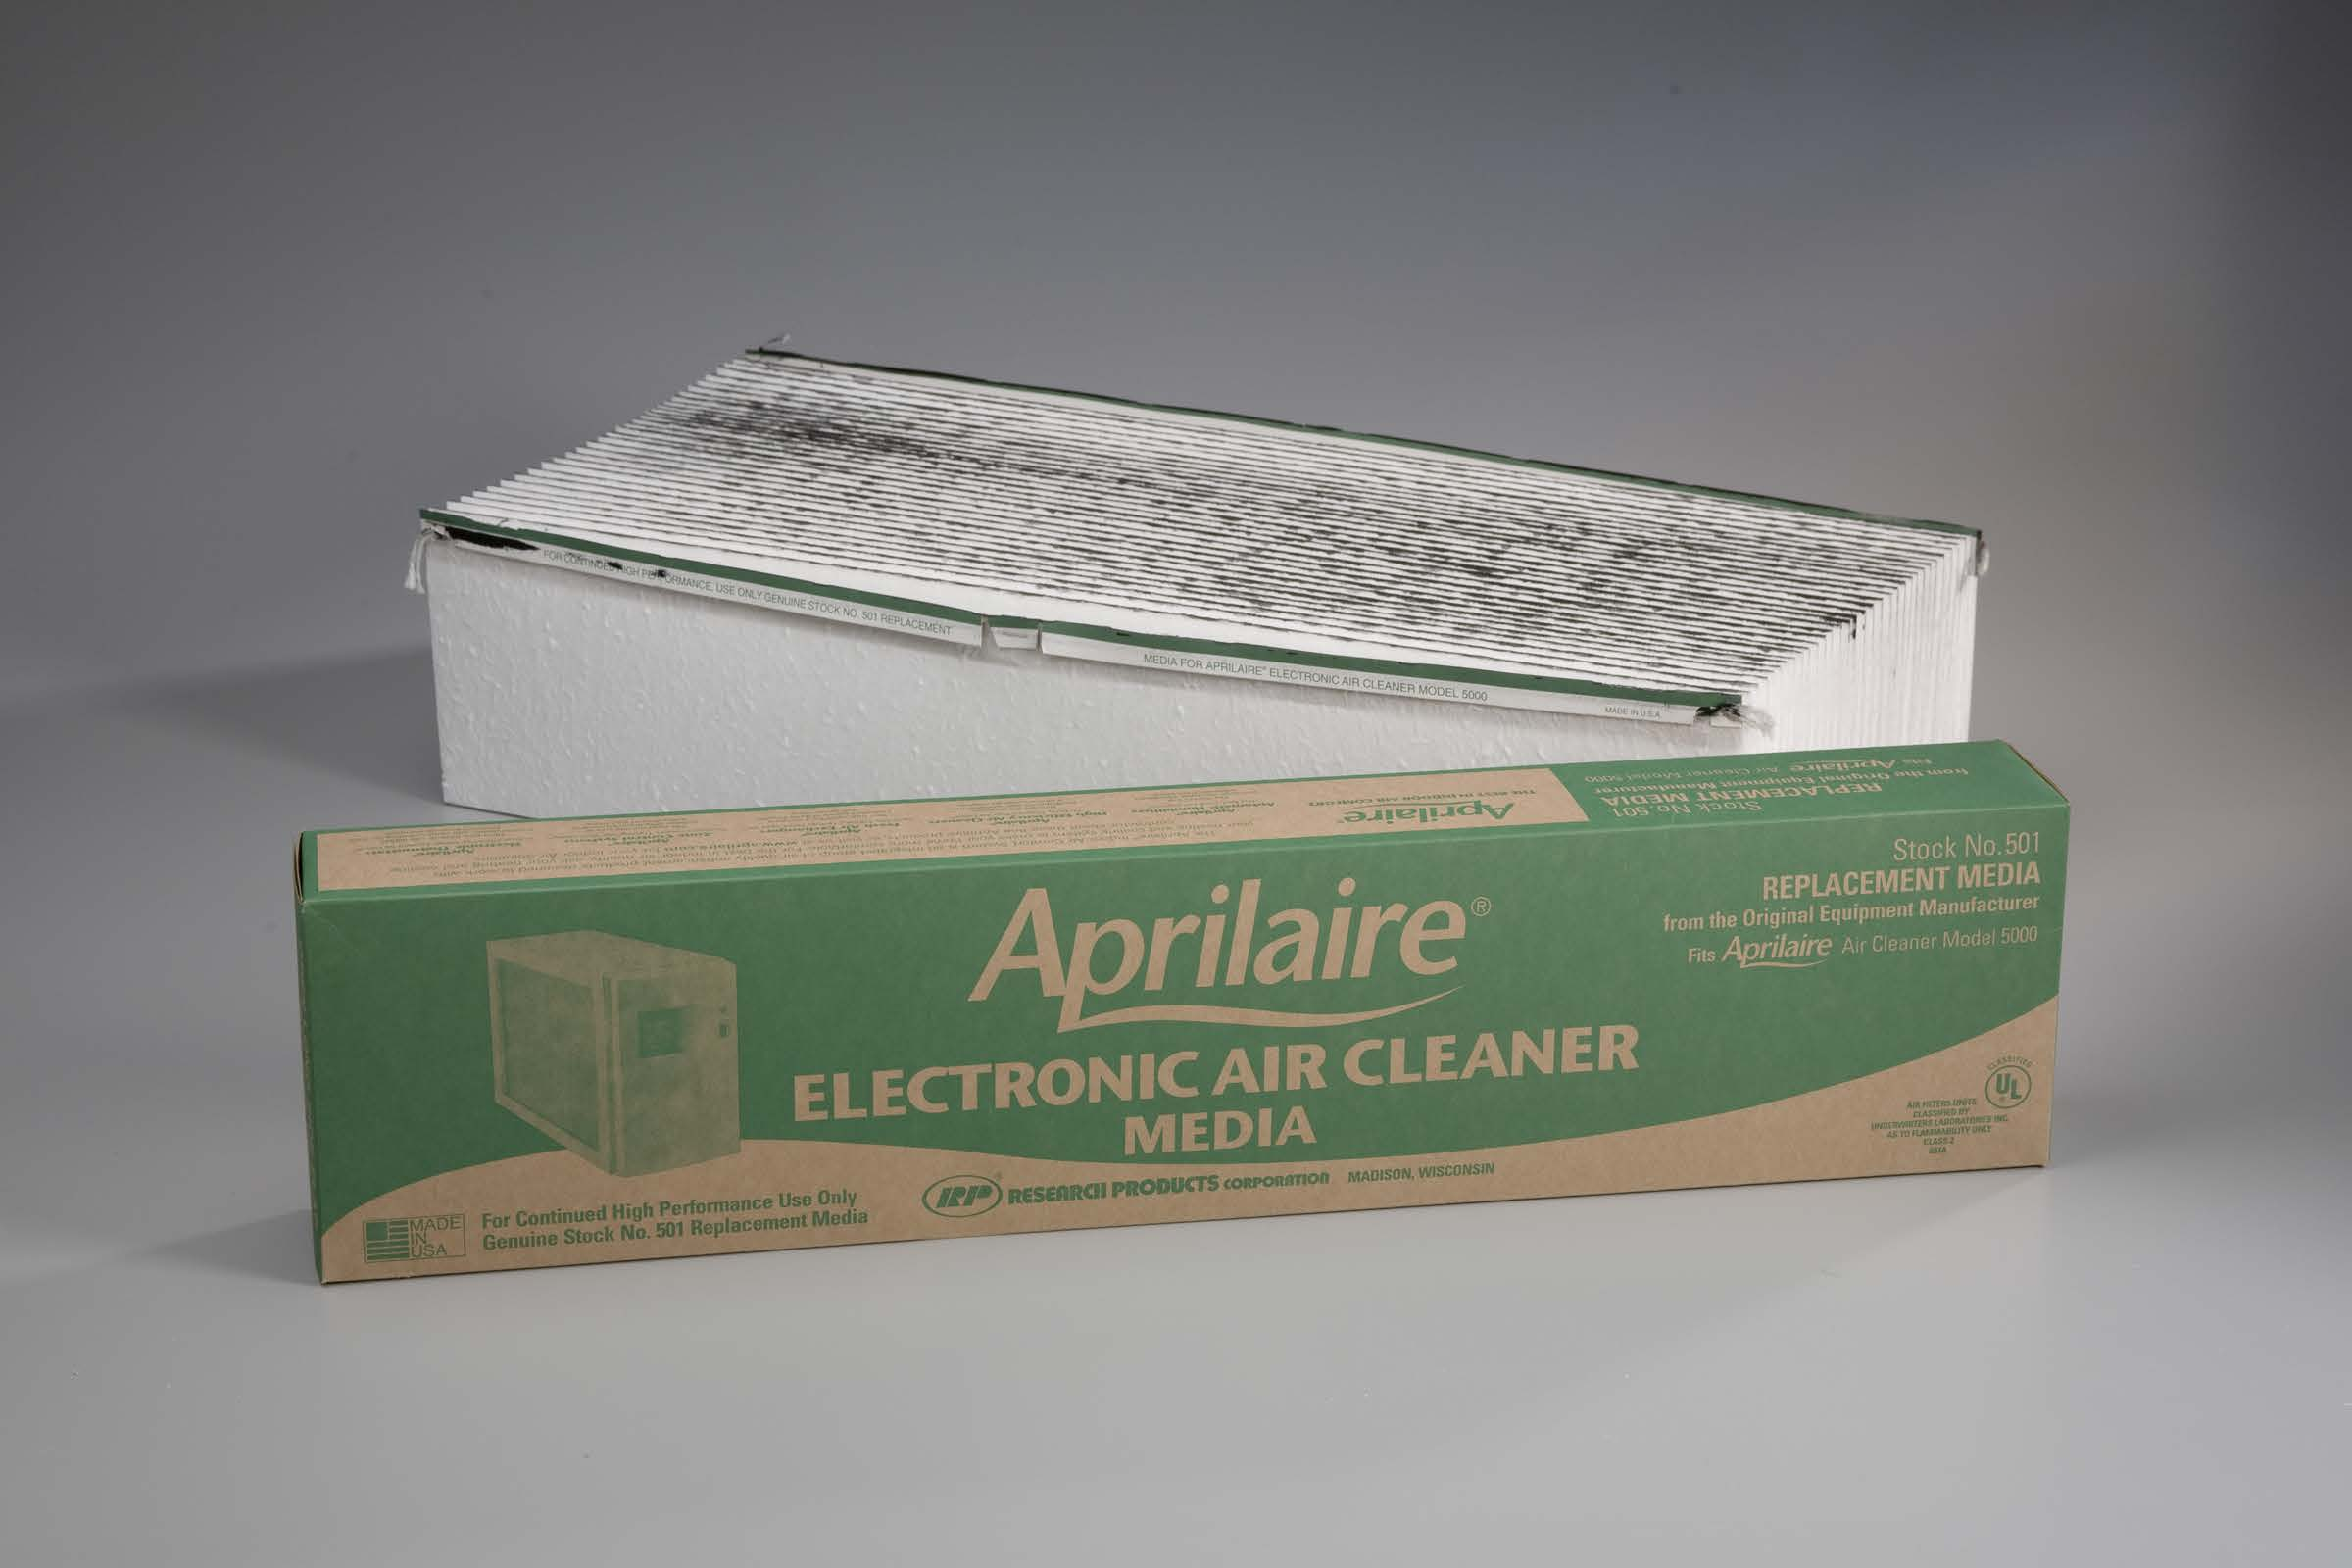 Aprilaire High Efficiency Media Air Filter for the Aprilaire Model 5000 Air Cleaner.